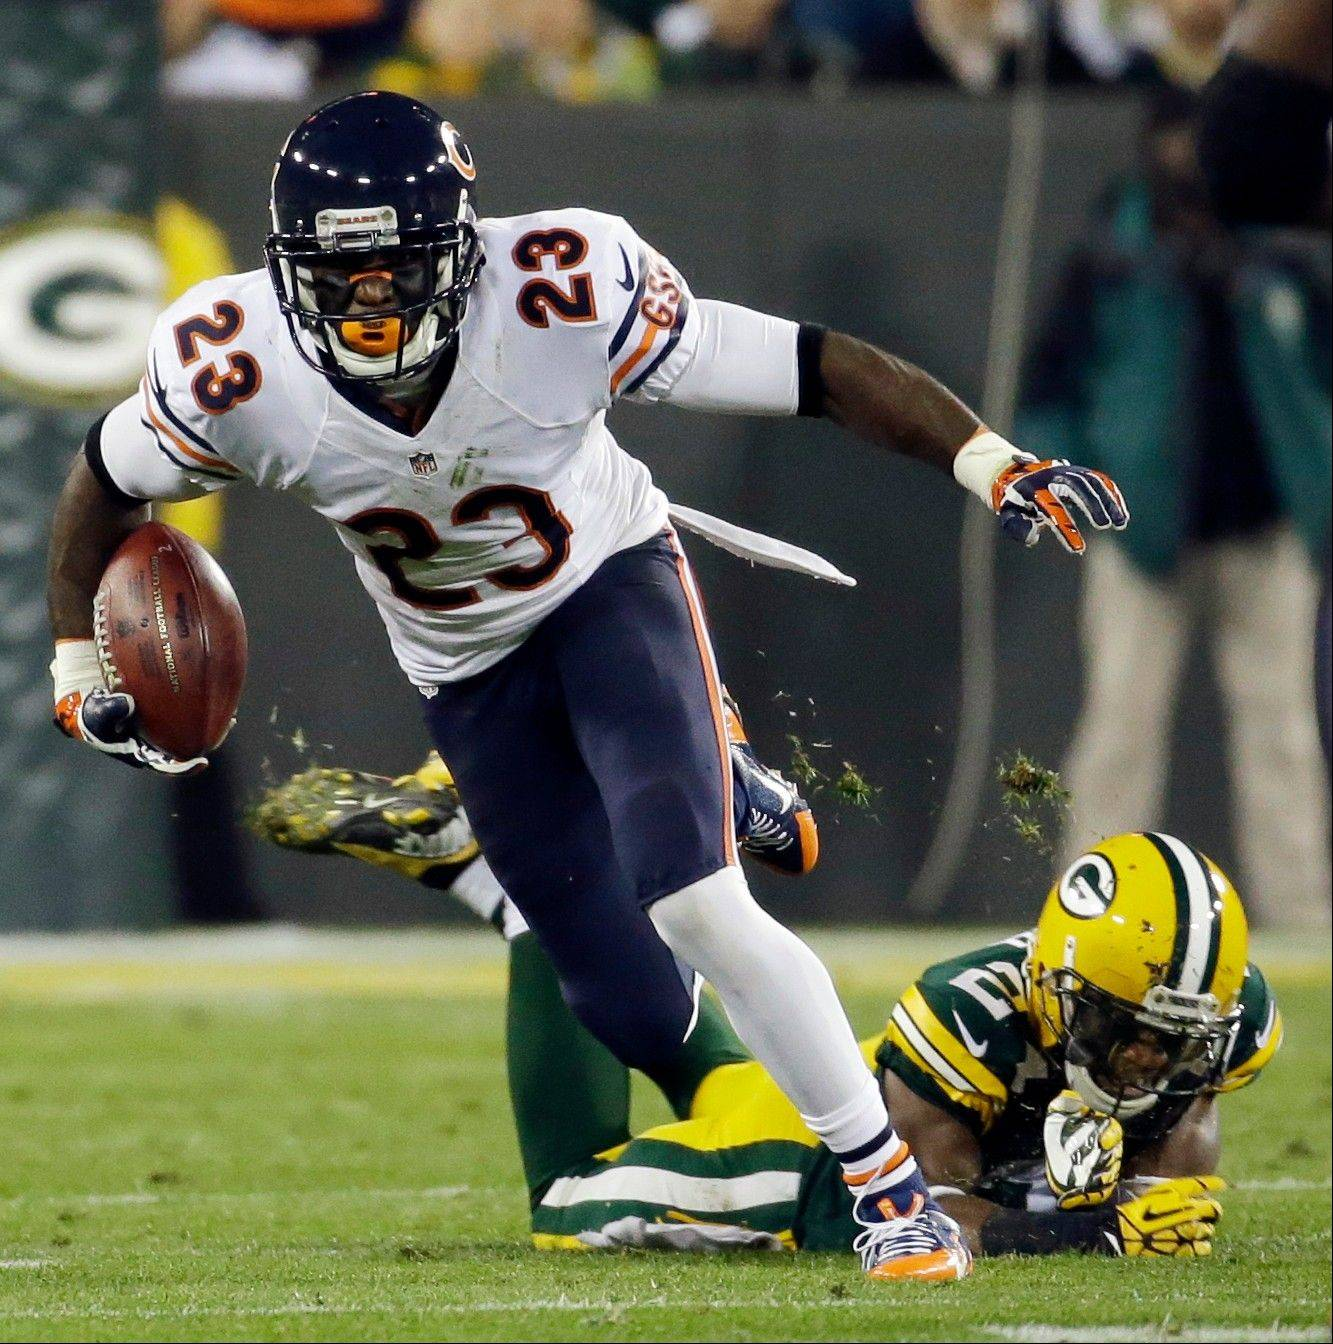 Chicago Bears' Devin Hester tries to get past Green Bay Packers' Jarrett Bush on a punt return during the second half .